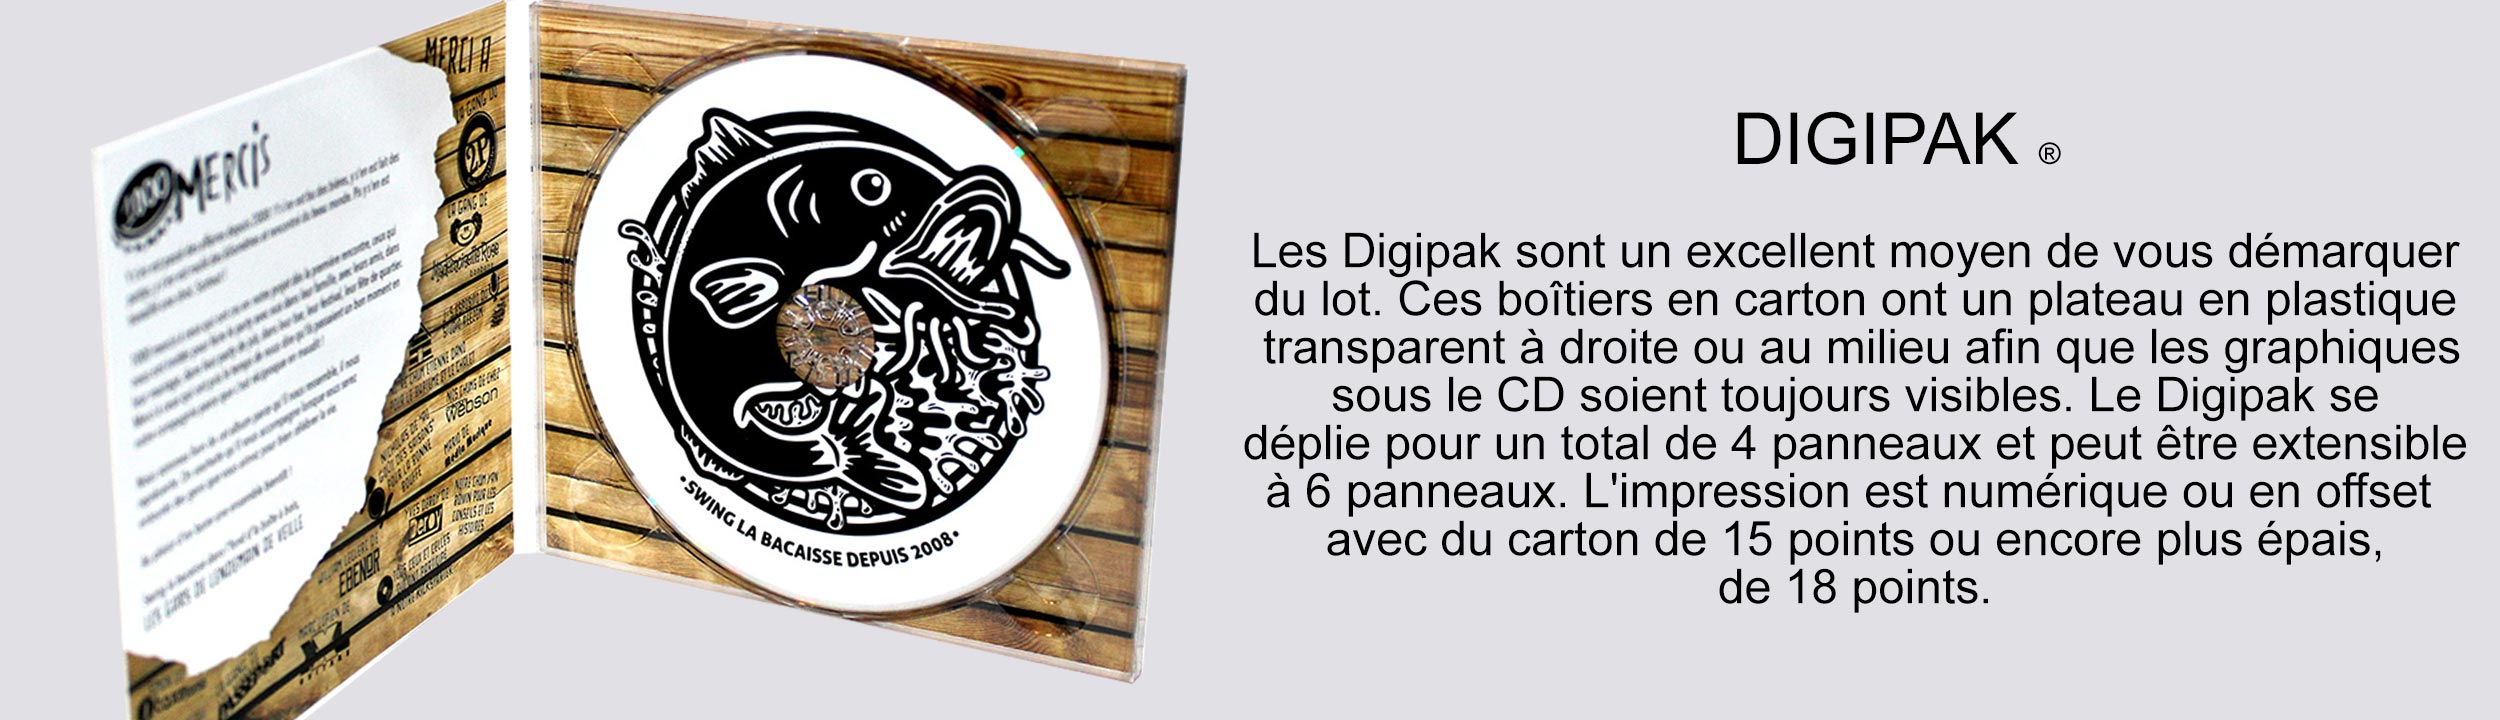 package_digipak01_french